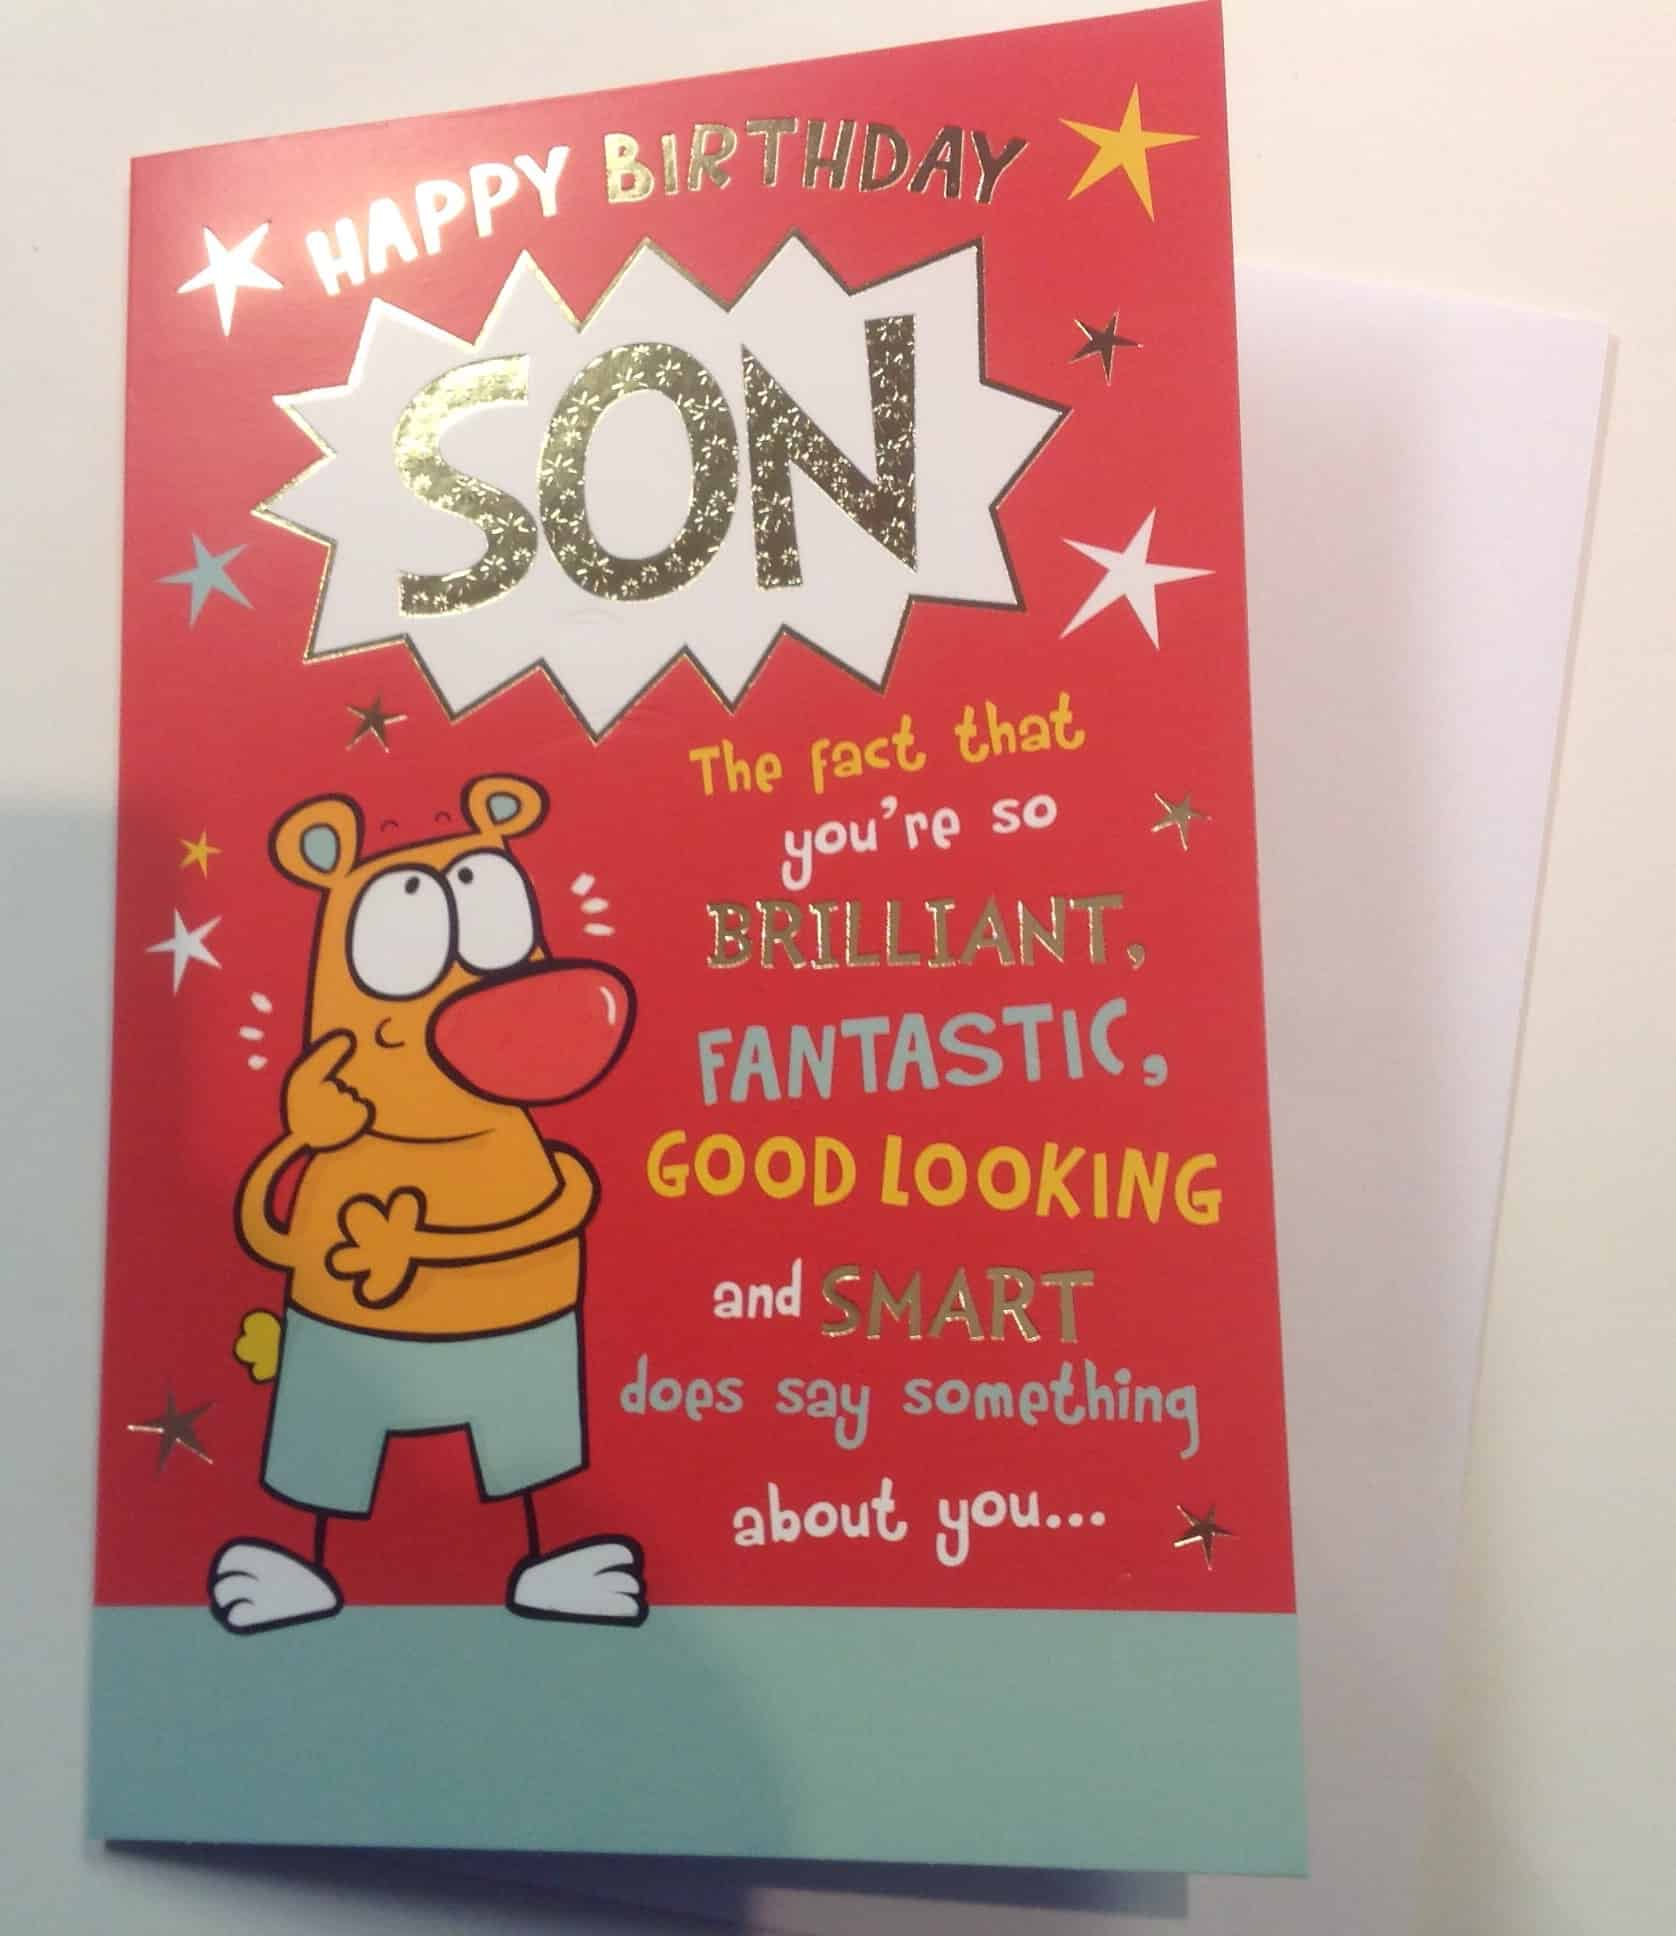 Son Birthday Card With Joke Design With Love Gifts & Cards